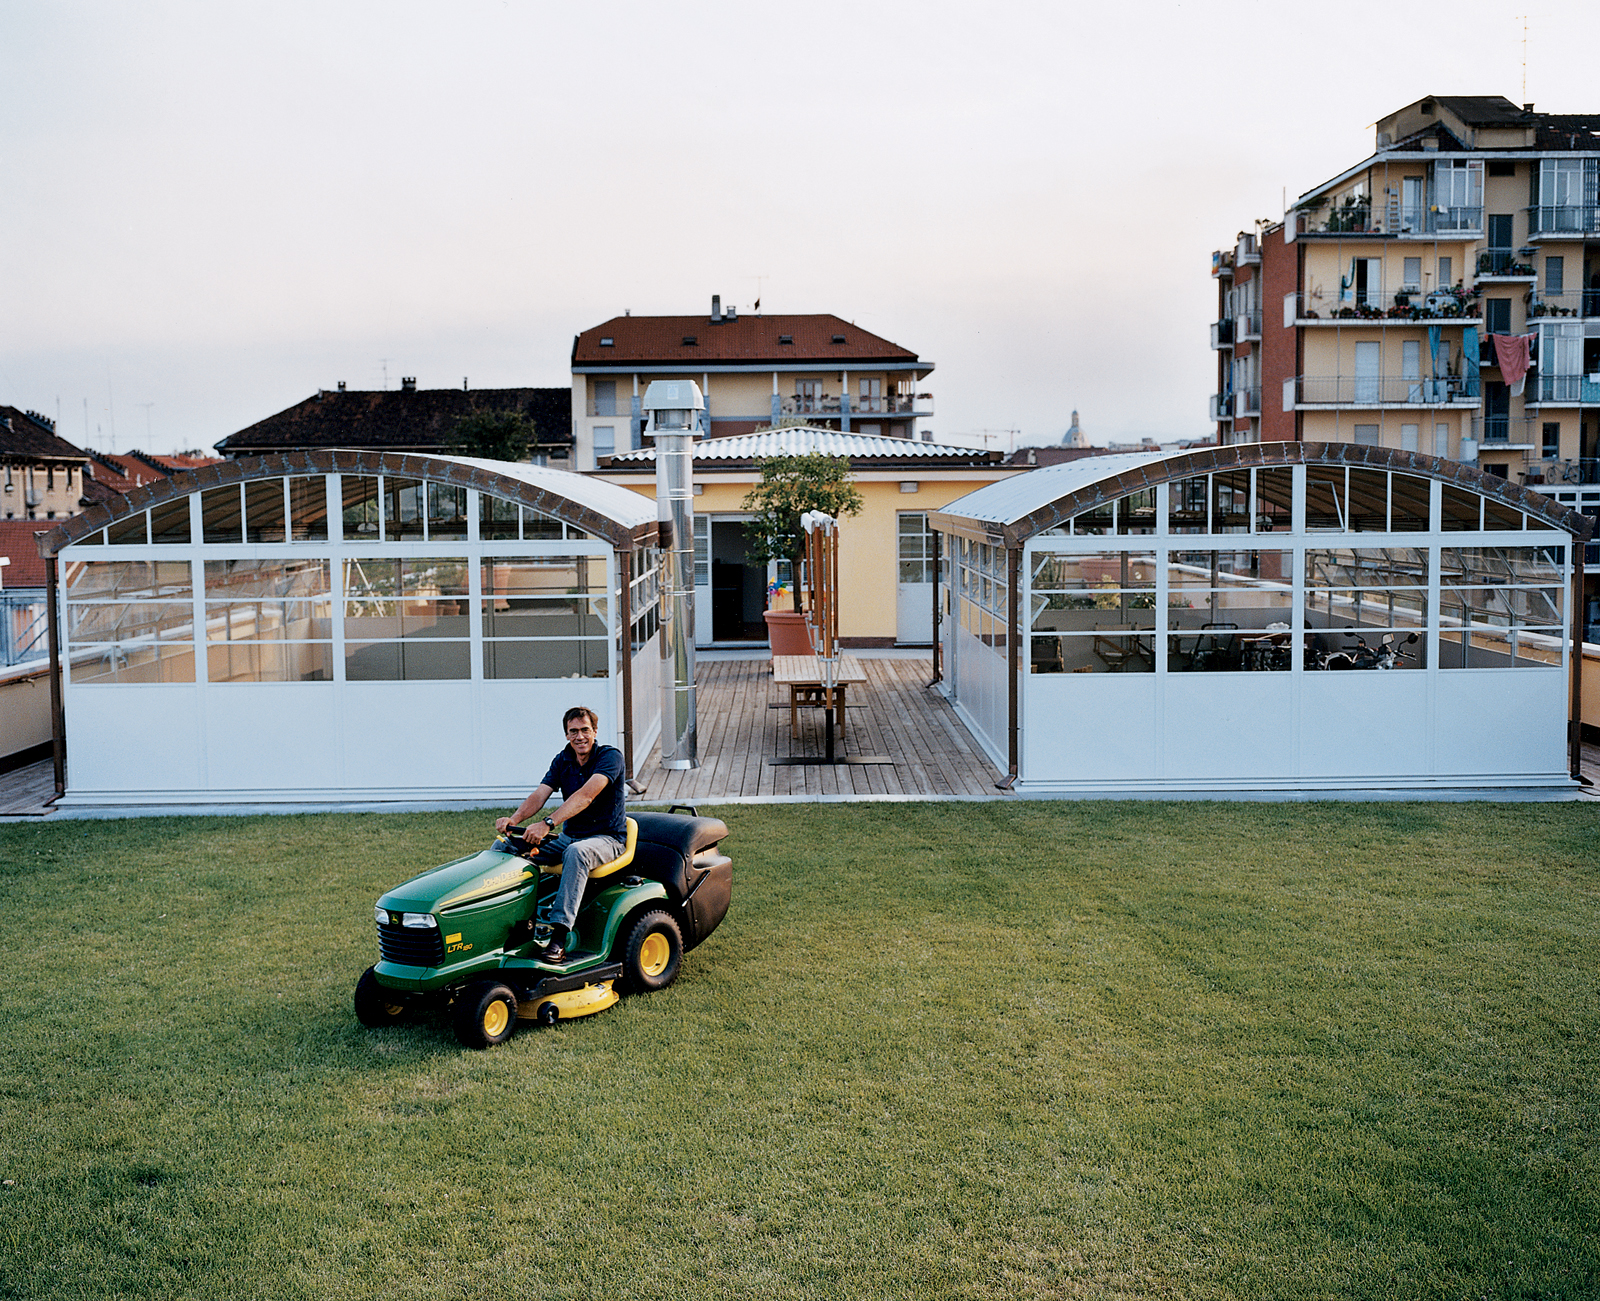 Along with his wife, Stella, daughter, two sons, and nanny, Marco Boglione lives large in a split-level 8,600-square-foot open space that includes his entire business operation (factory, office and retail) and a rooftop garden.